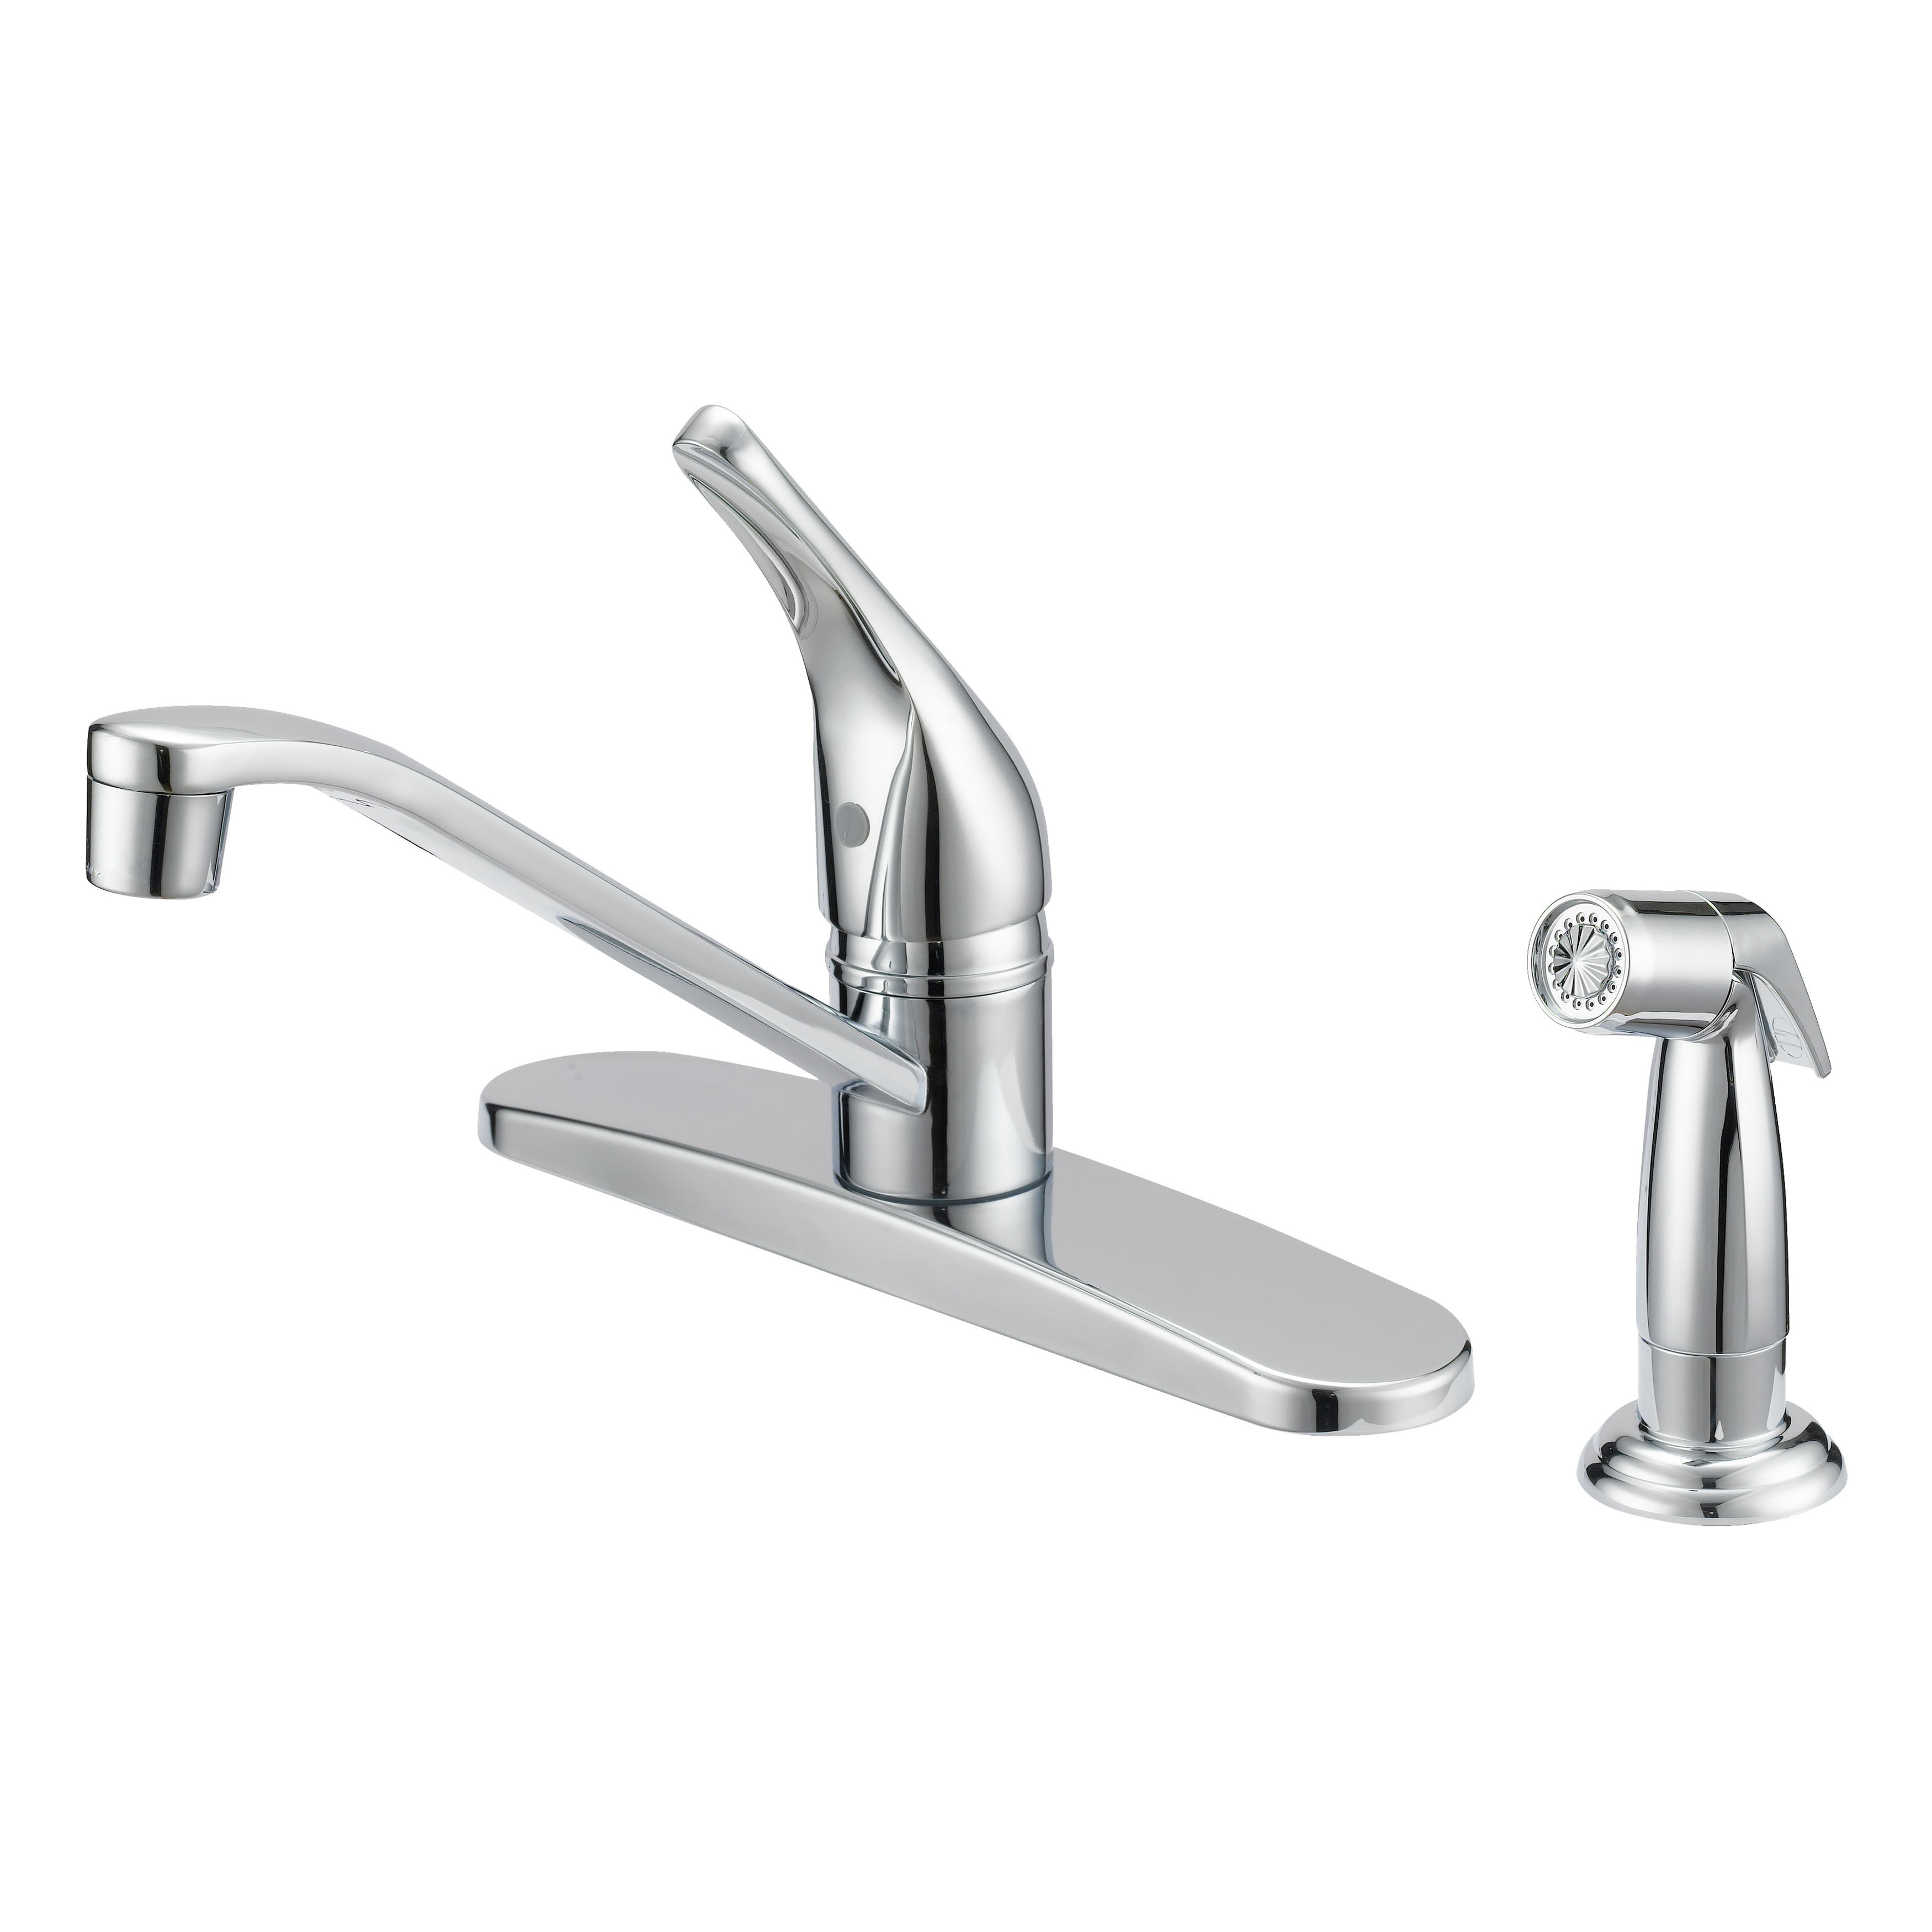 Picture of Boston Harbor FS610046CP Kitchen Faucet, 1.8 gpm, 1-Faucet Handle, Metal, Chrome, Lever Handle